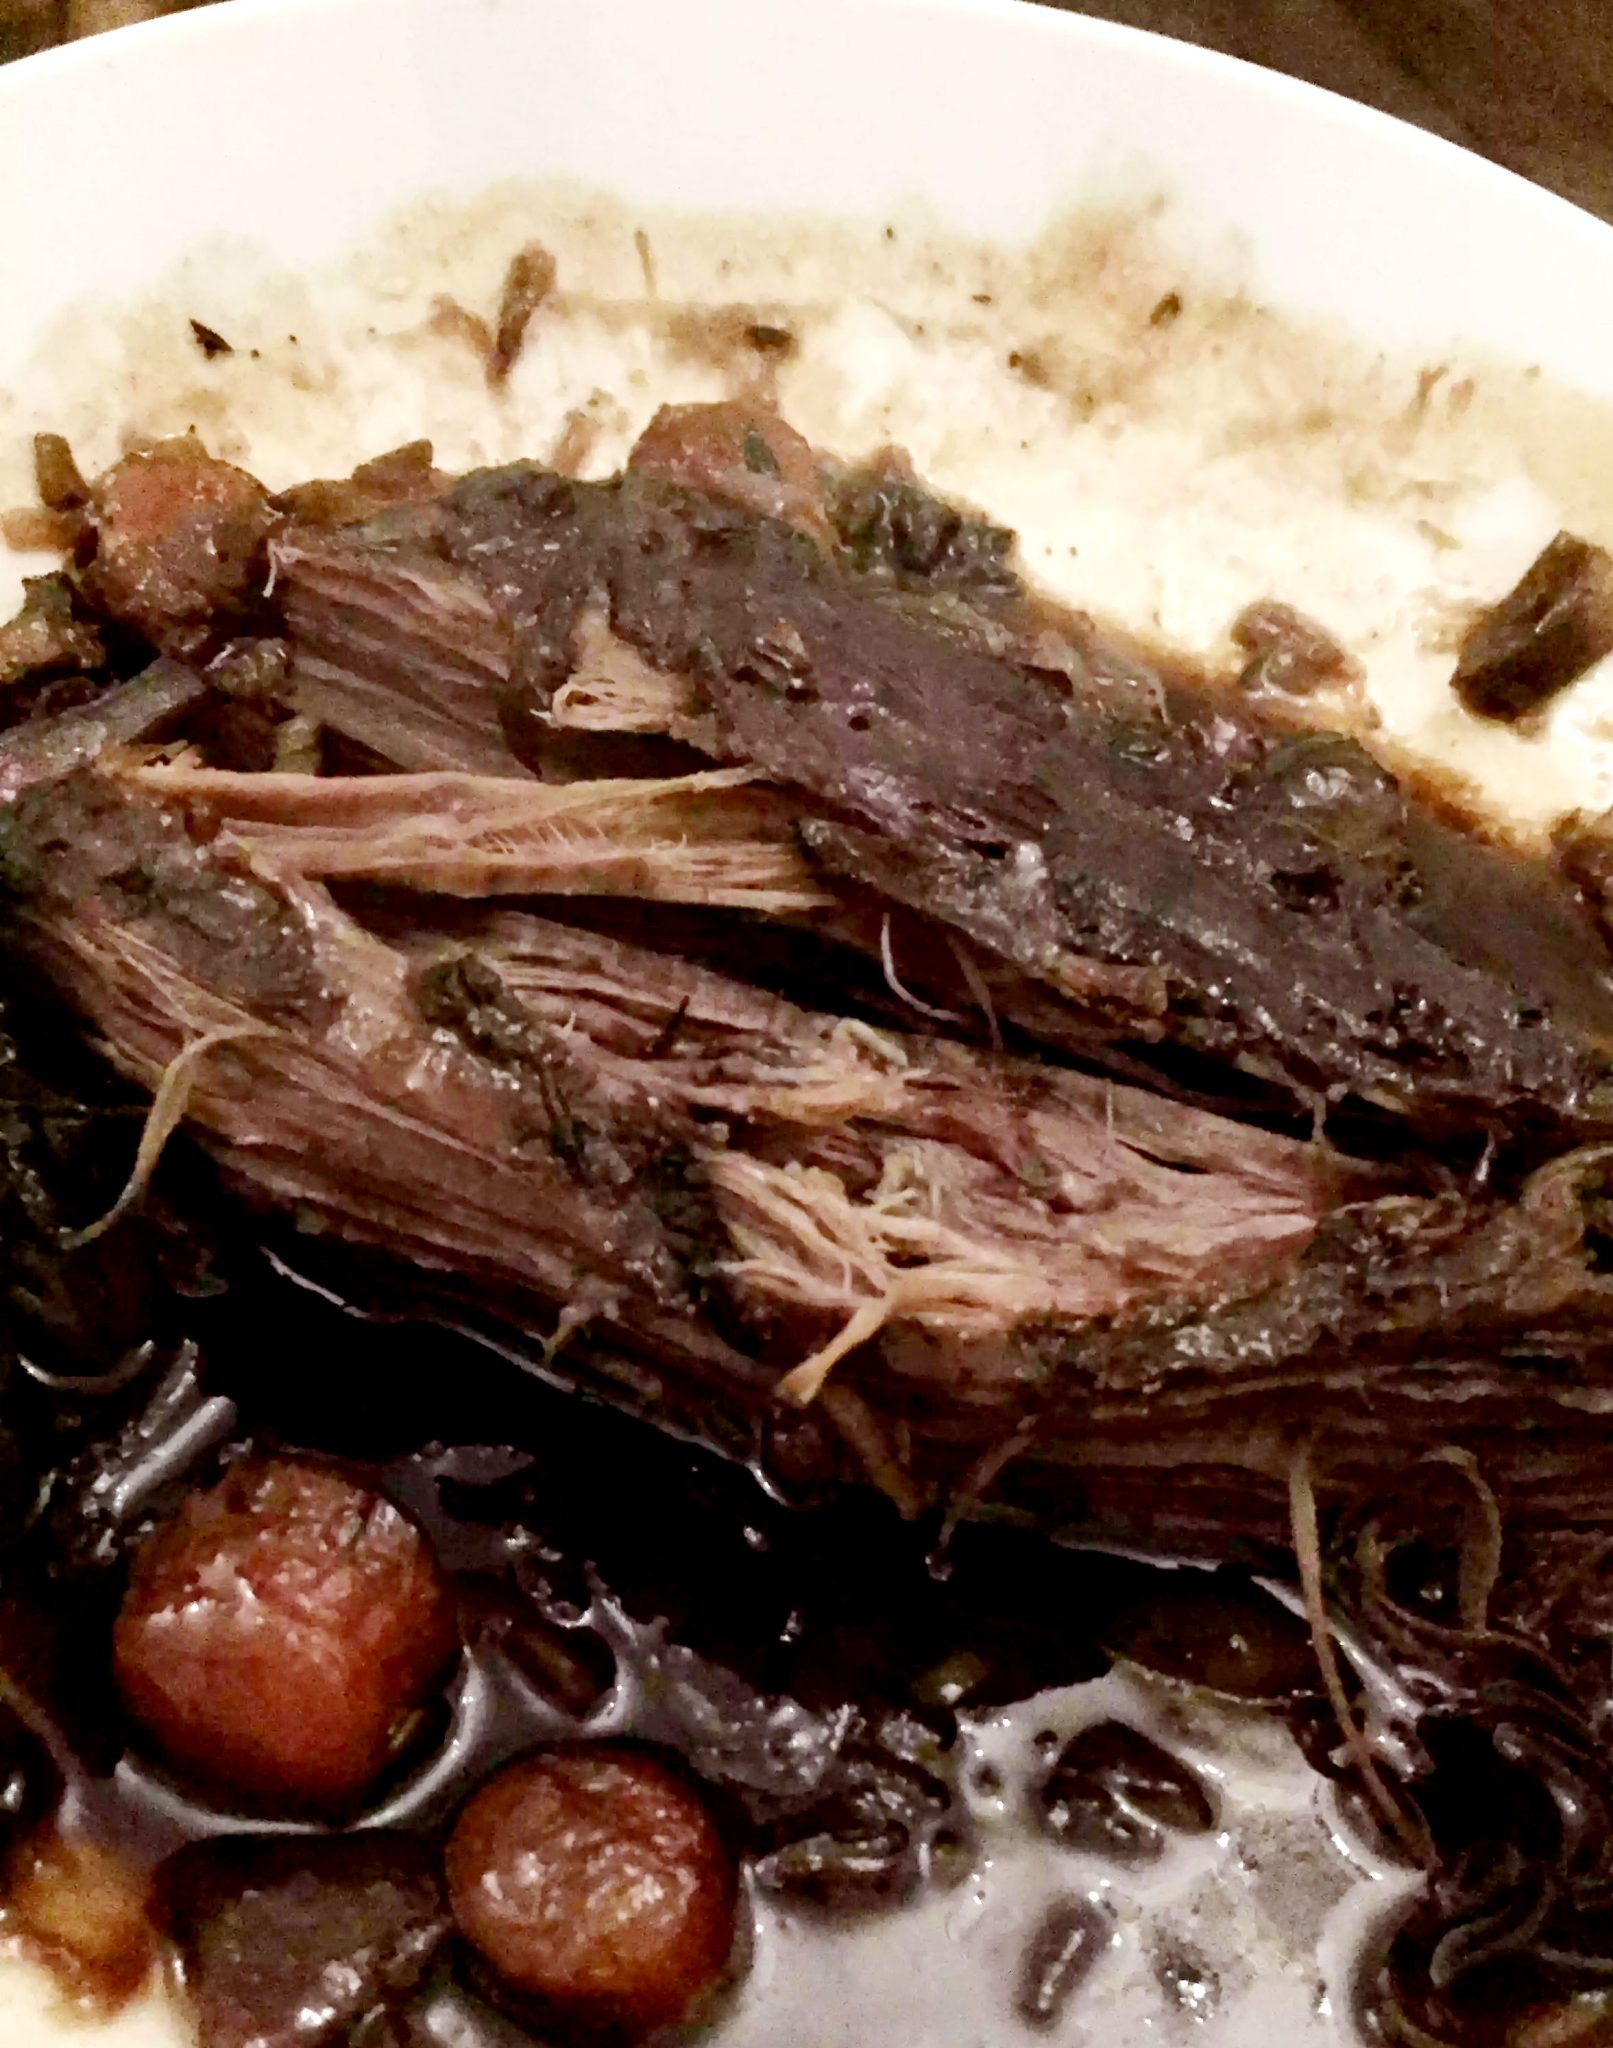 Slow-Cooked Beef Brisket by Emma Eats & Explores - SCD, Paleo, Grainfree, Glutenfree, Sugarfree